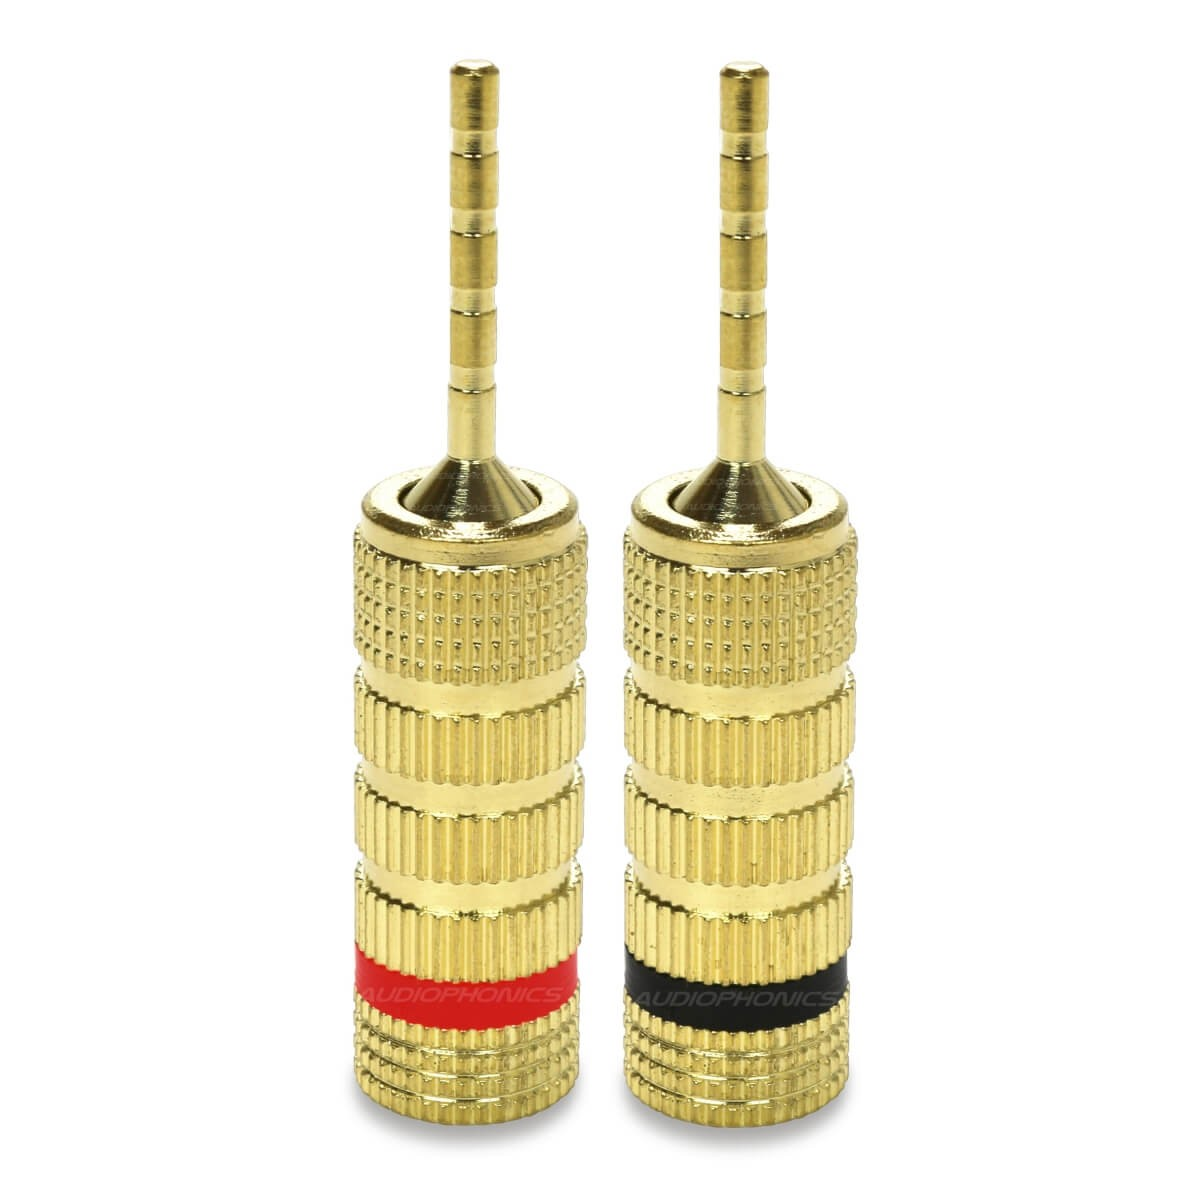 Gold plated Reducers for speakers cable 2mm (Pair)